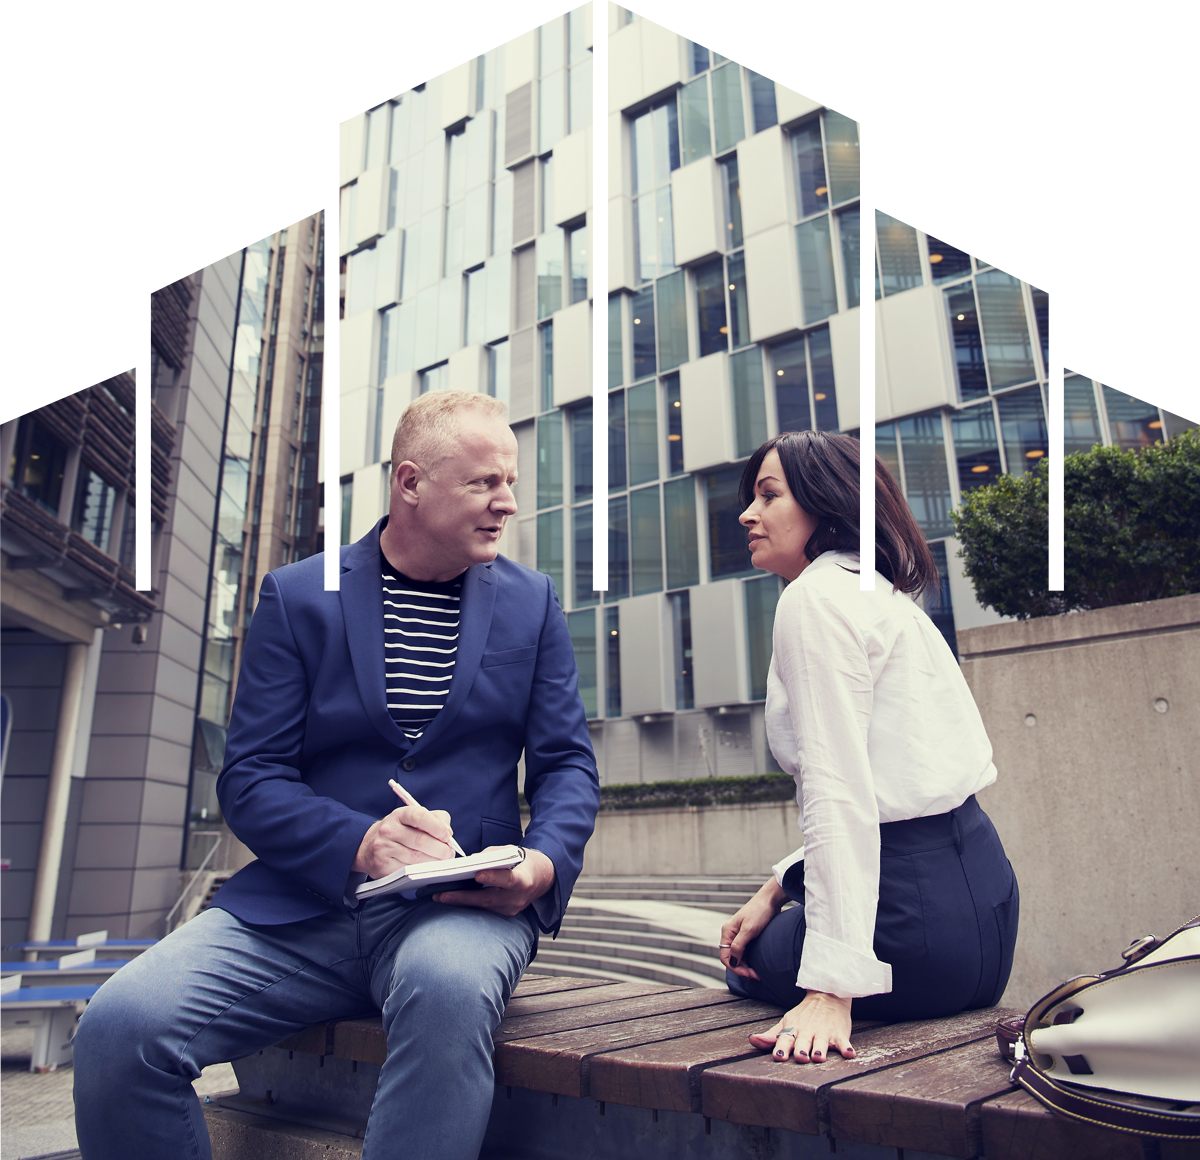 man-and-woman-sitting-on-wooden-bench-outside-buildings